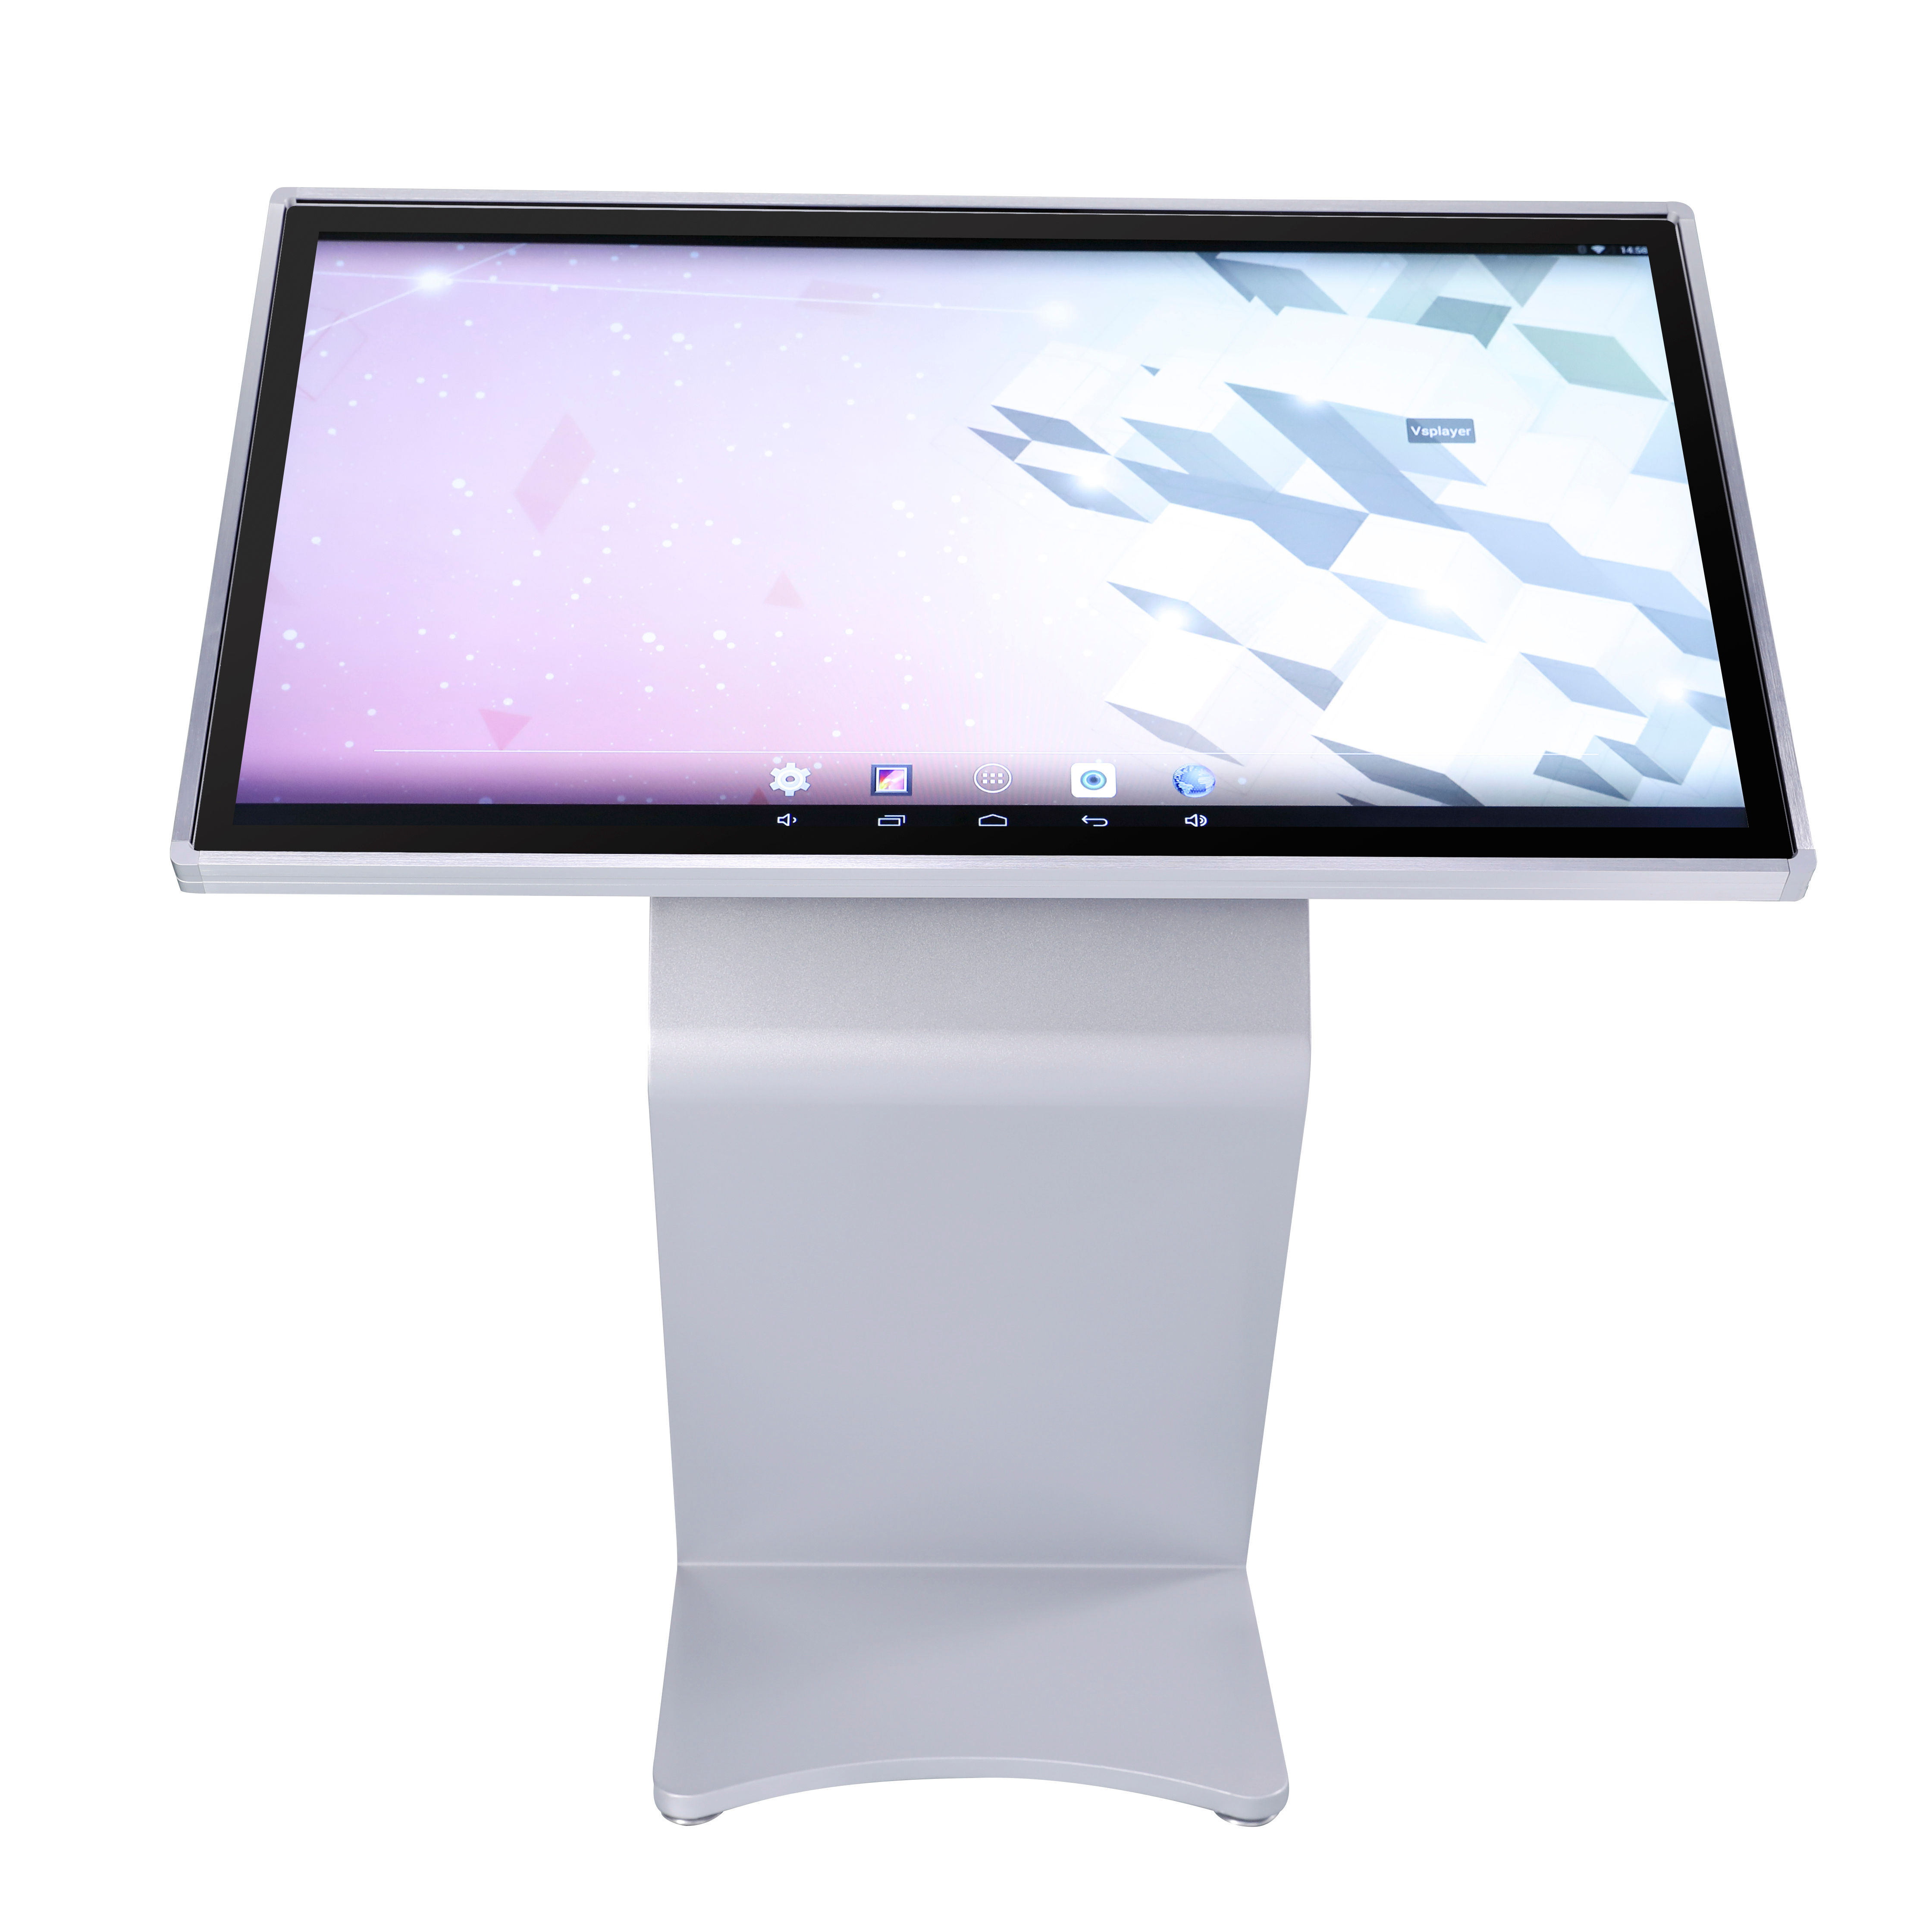 55 zoll android alle-in-one Touch Media Player stand digital signage